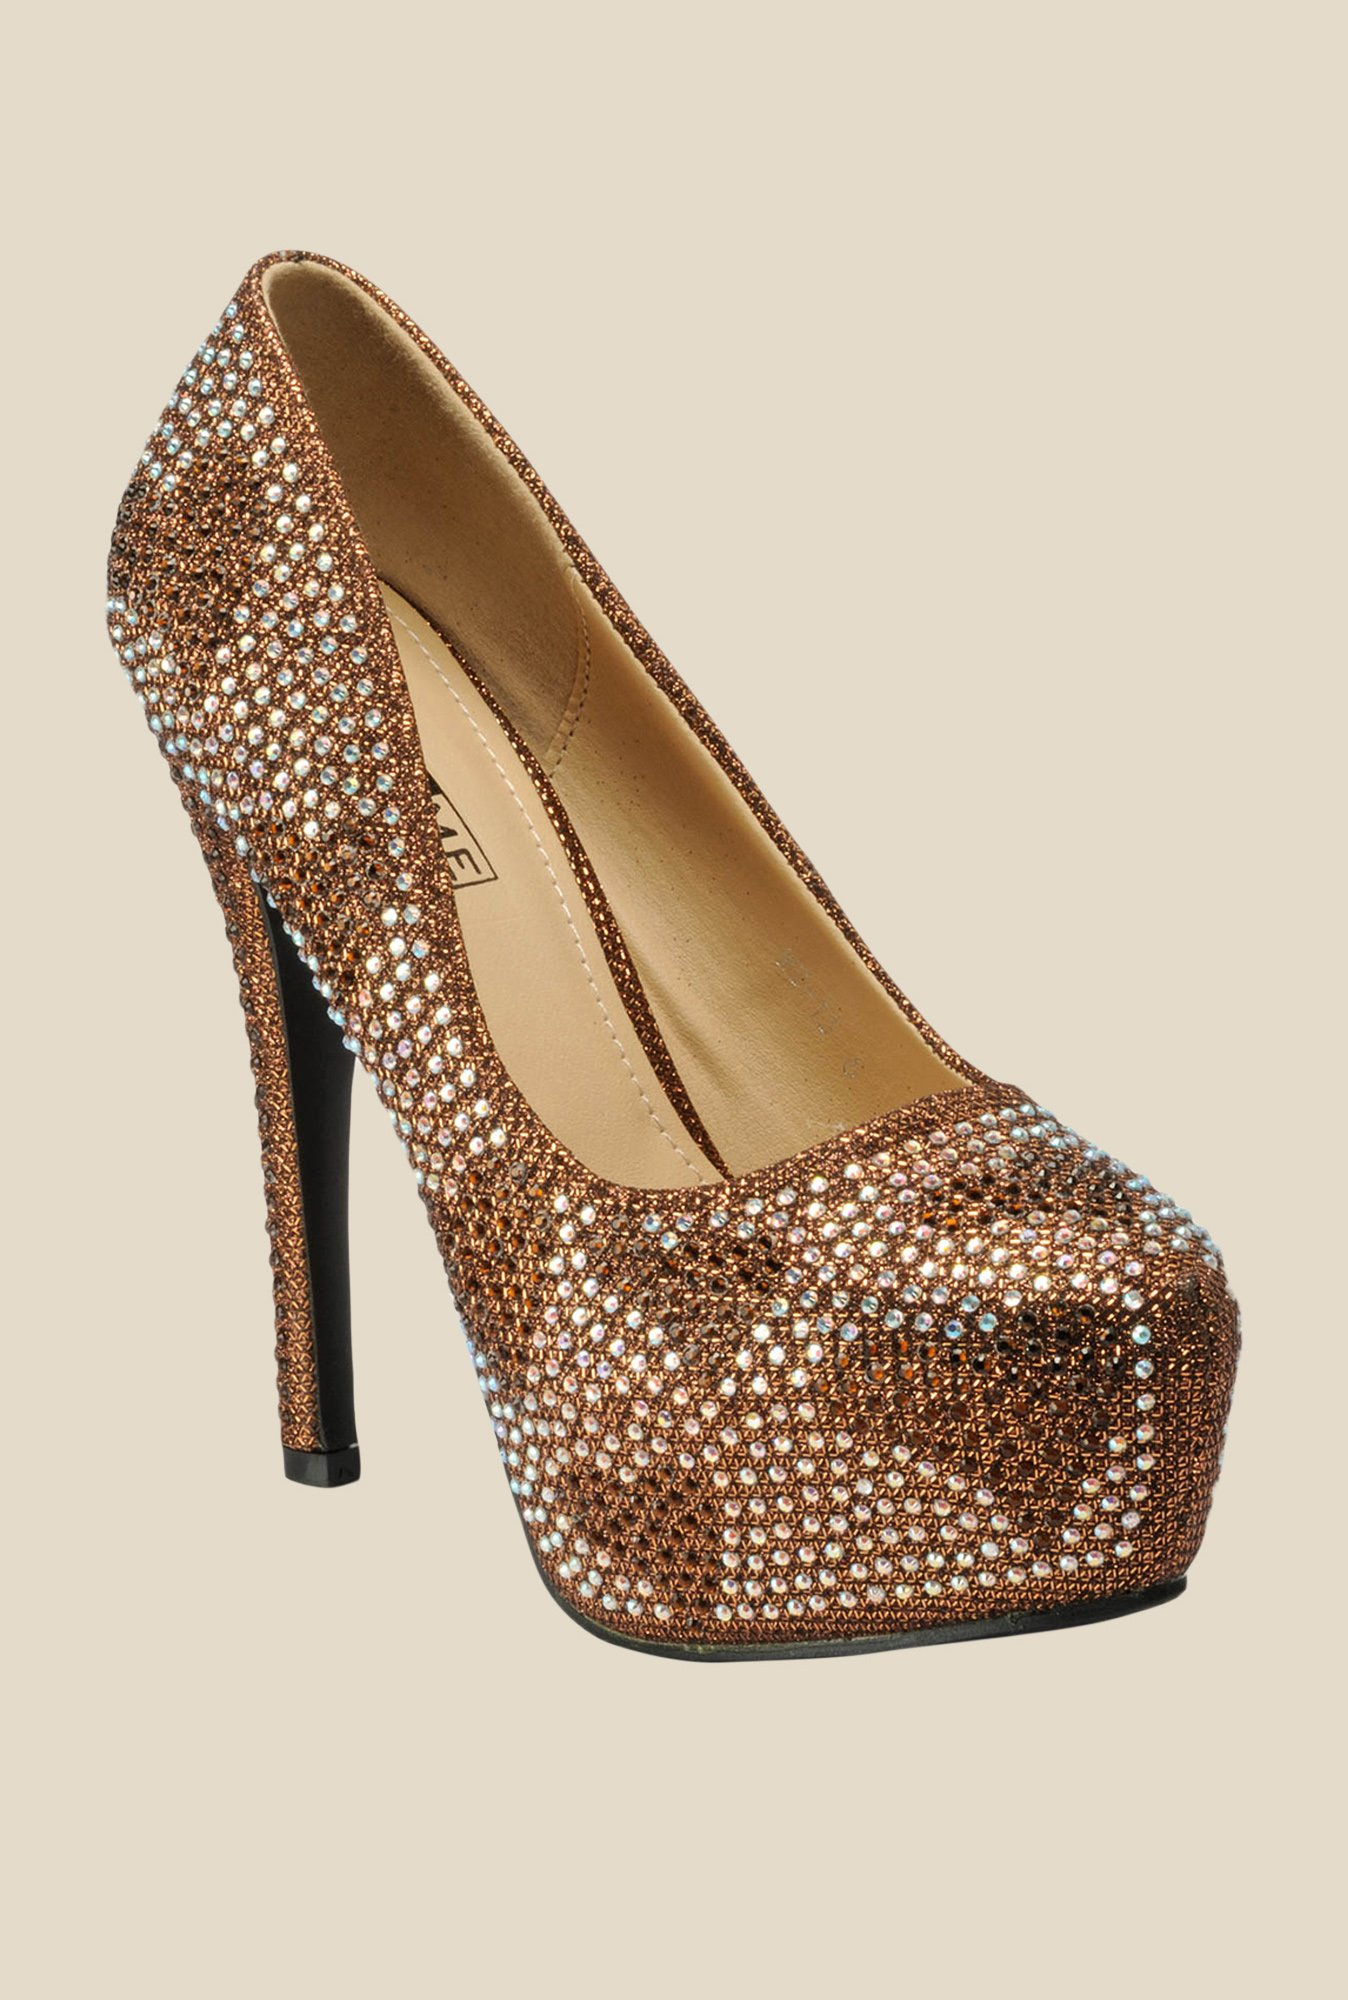 Yepme Bronze & White Stiletto Pumps